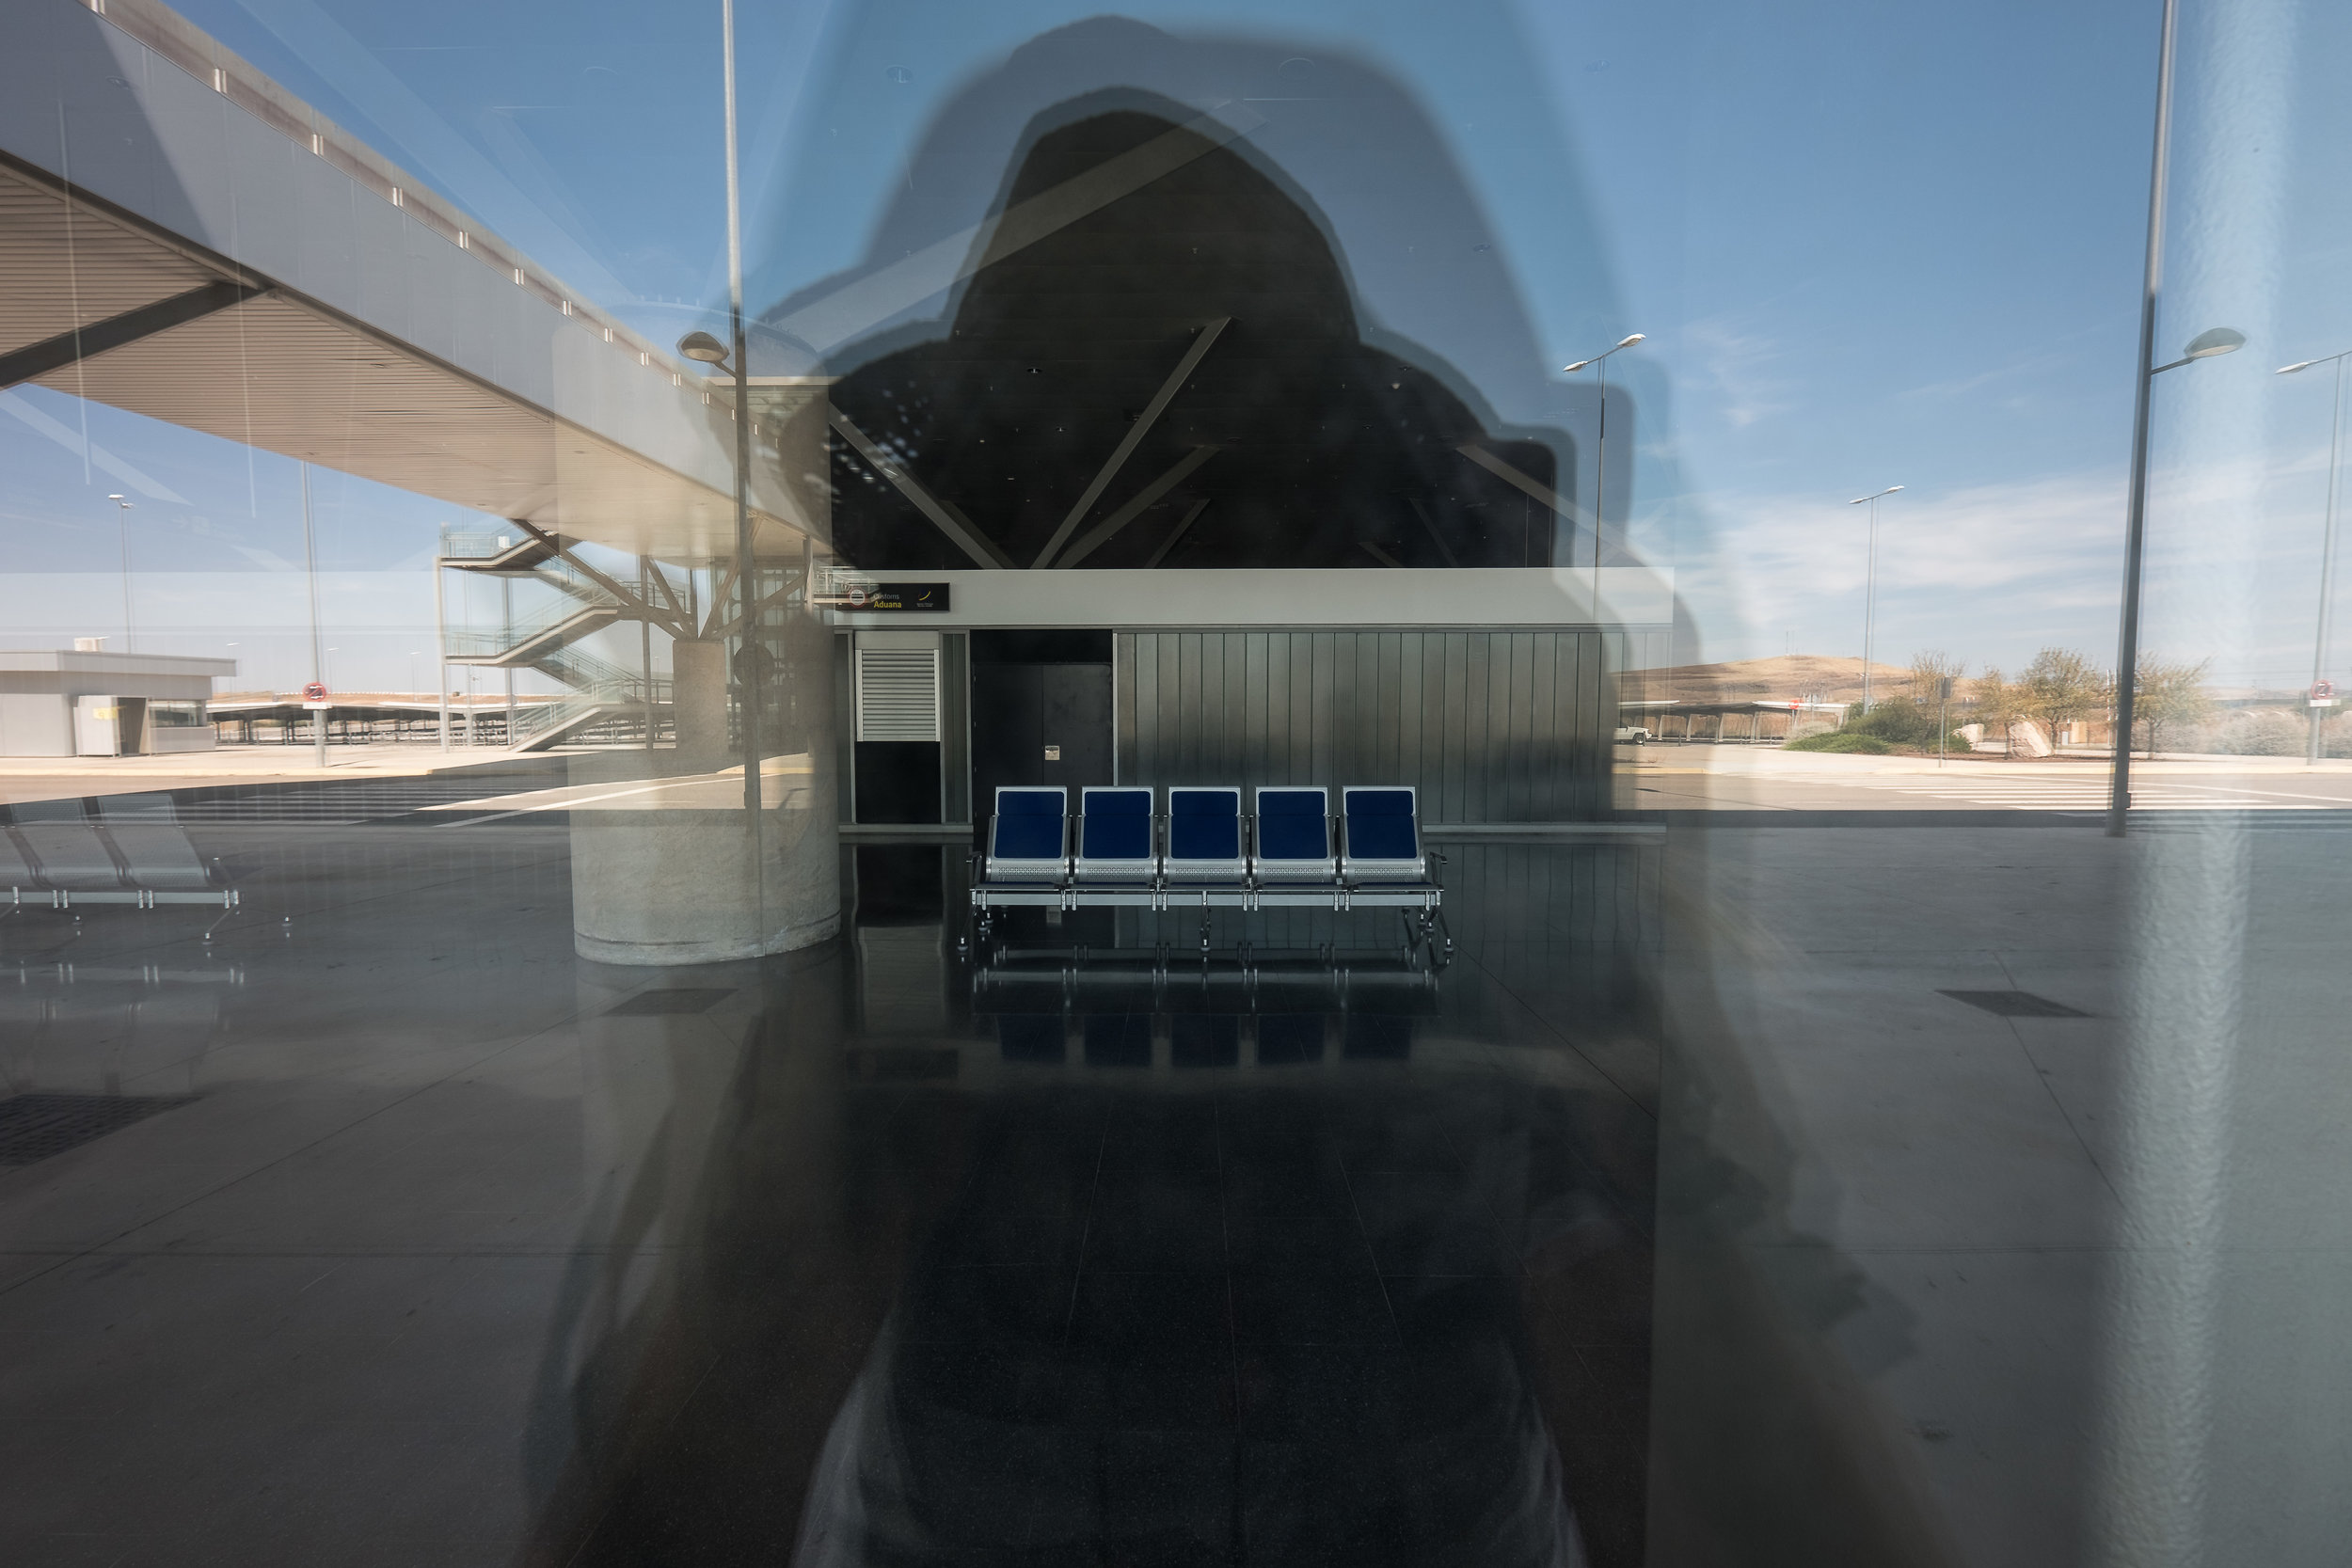 Ciudad Real's La Mancha airport (CQM) - This project is also known as Don Quijote airport,an apt nickname considering that both the airport and literary character cannot distinguish delusion from reality.